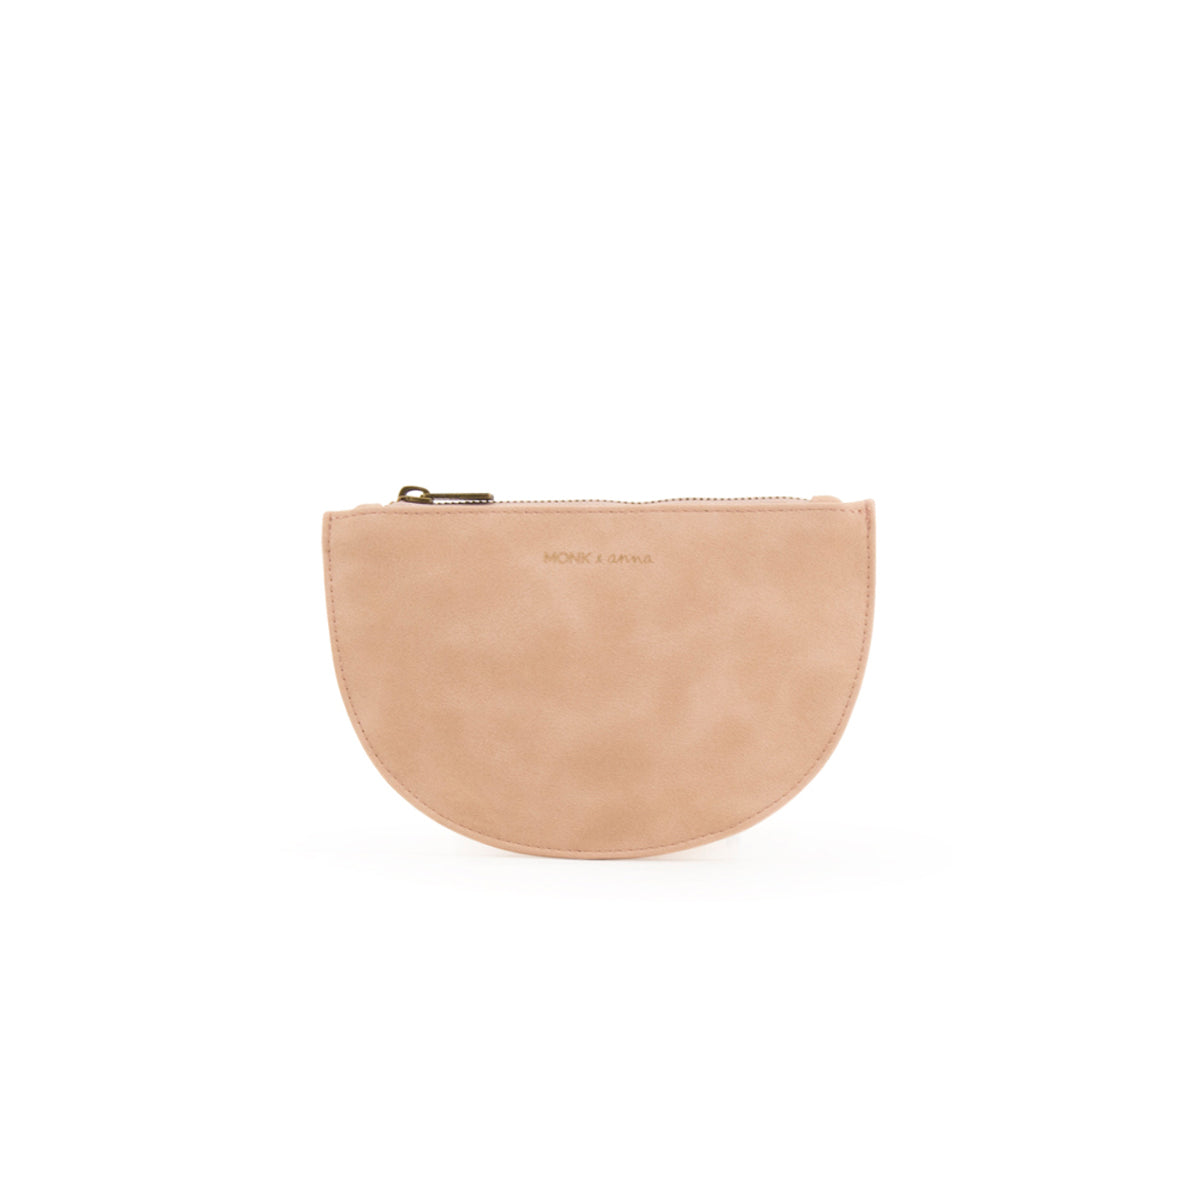 half moon wallet - soft pink